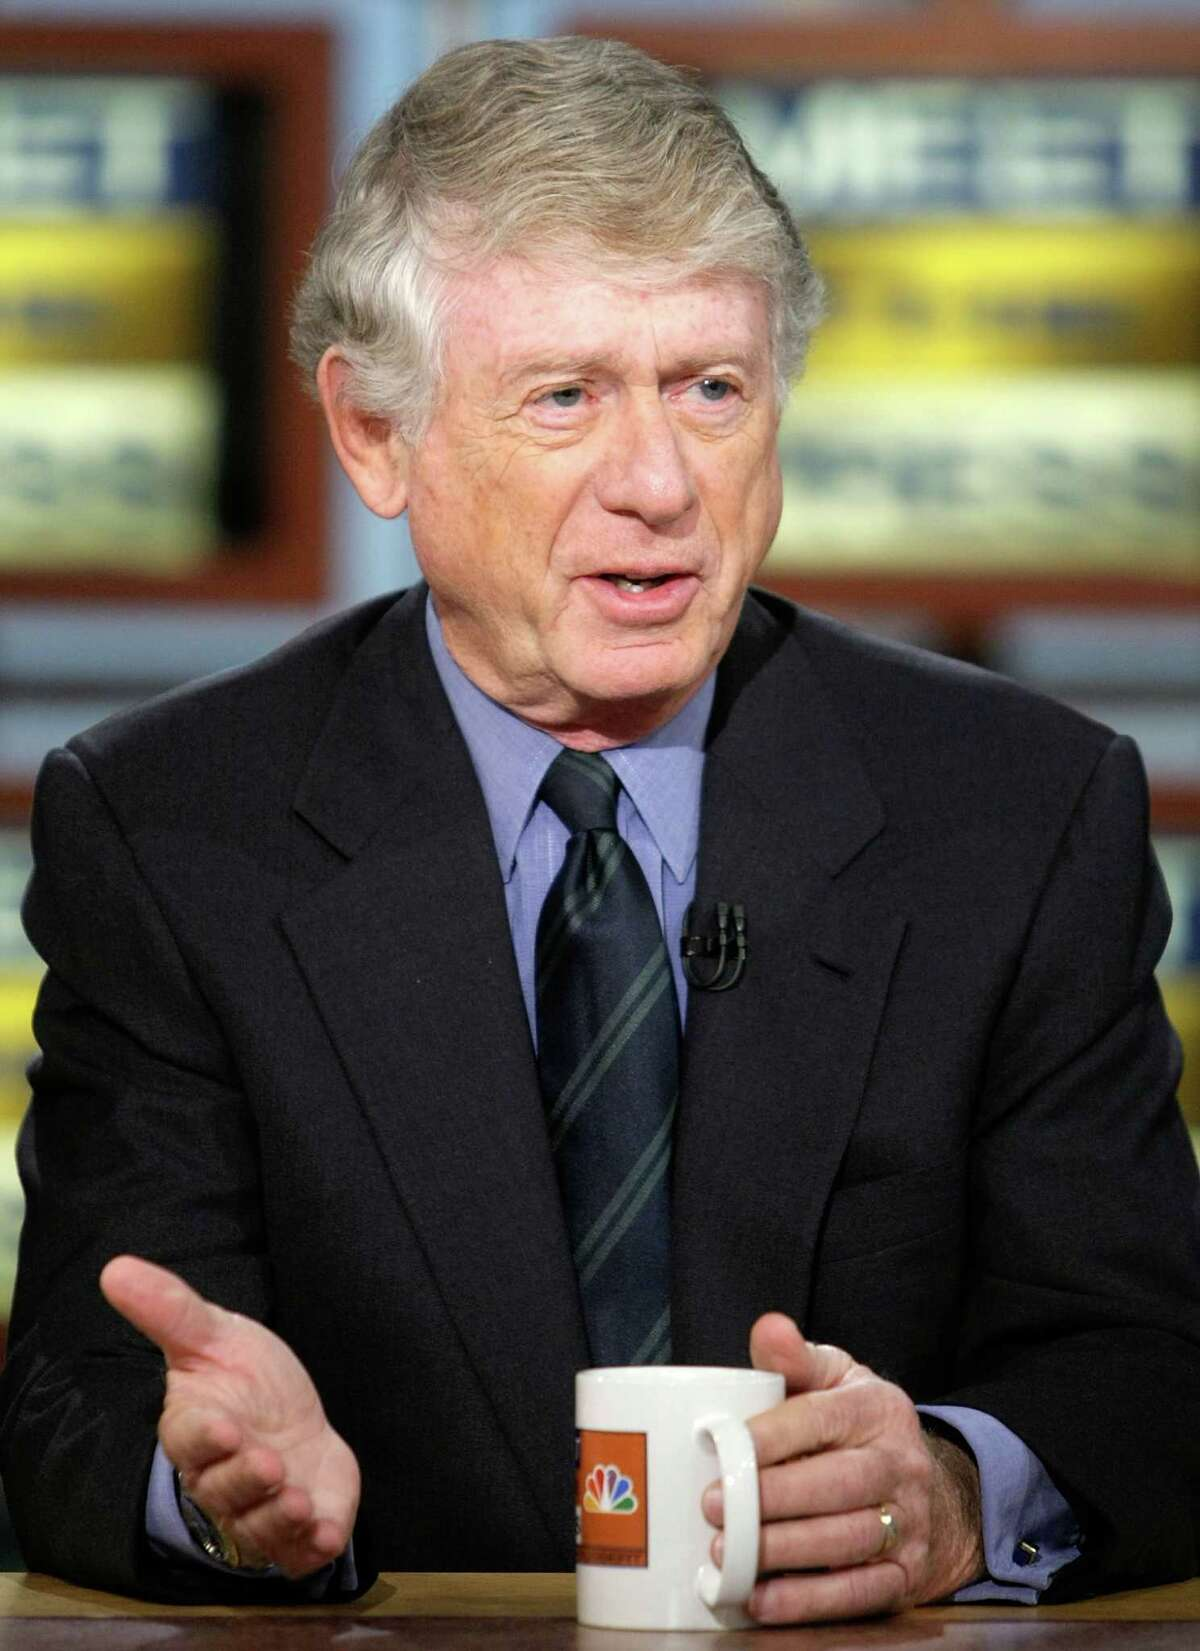 """WASHINGTON - OCTOBER 12: Managing Editor of Discovery Channel's """"The Last Lynching"""" Ted Koppel speaks during a taping of Meet the Press at the NBC studios October 12, 2008 in Washington, DC. Koppel spoke about various topics including the crisis on Wall Street and the U.S. economy. (Photo by Alex Wong/Getty Images for Meet the Press)"""